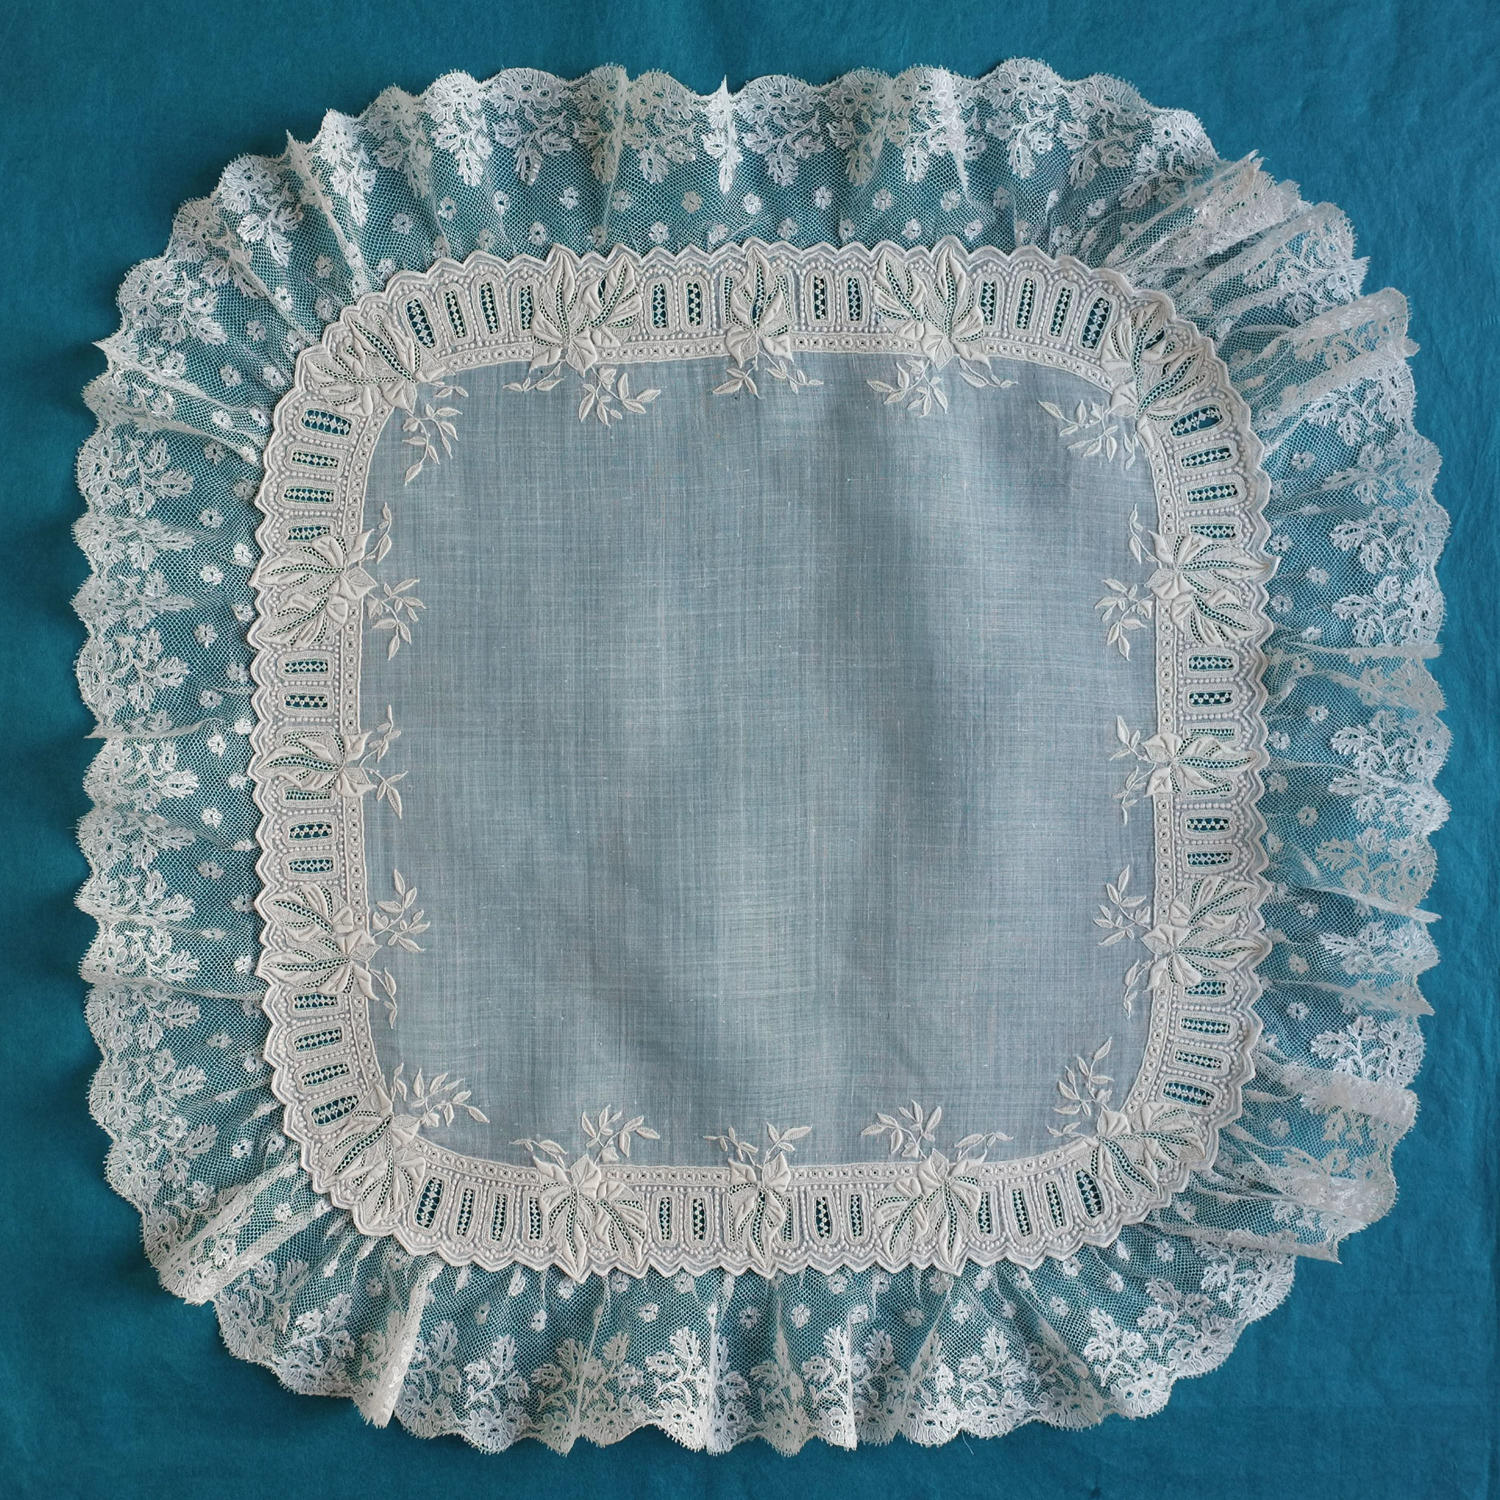 19th Century French Whitework and Mechlin Lace Handkerchief